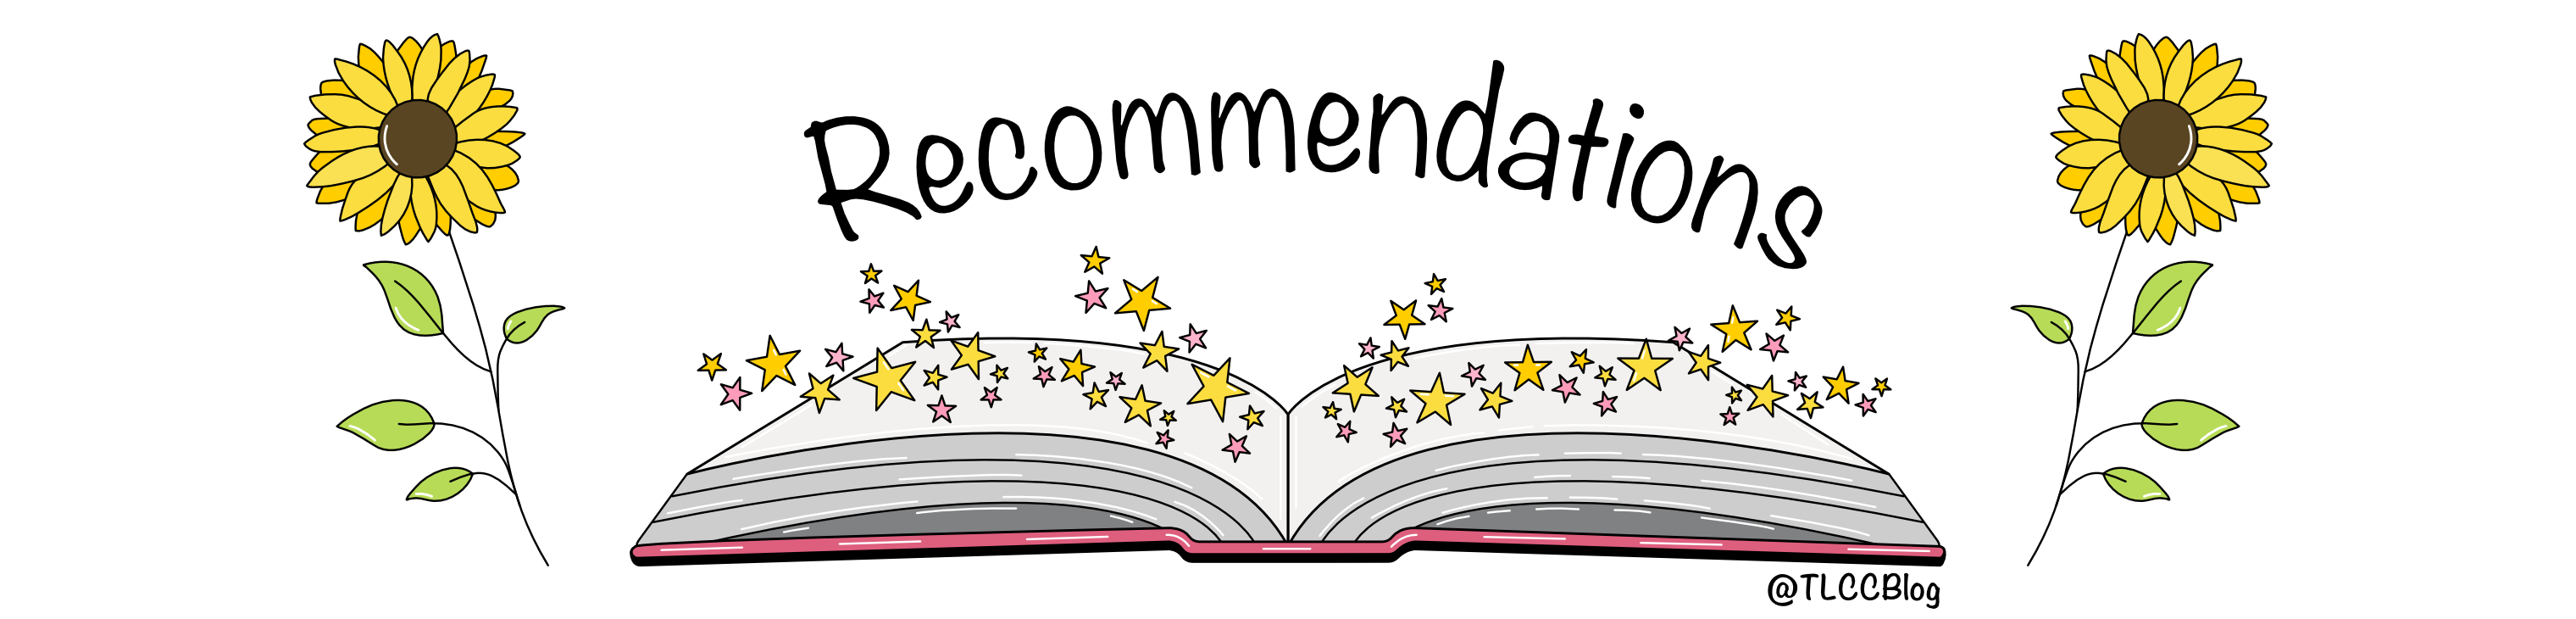 Recommendations Header